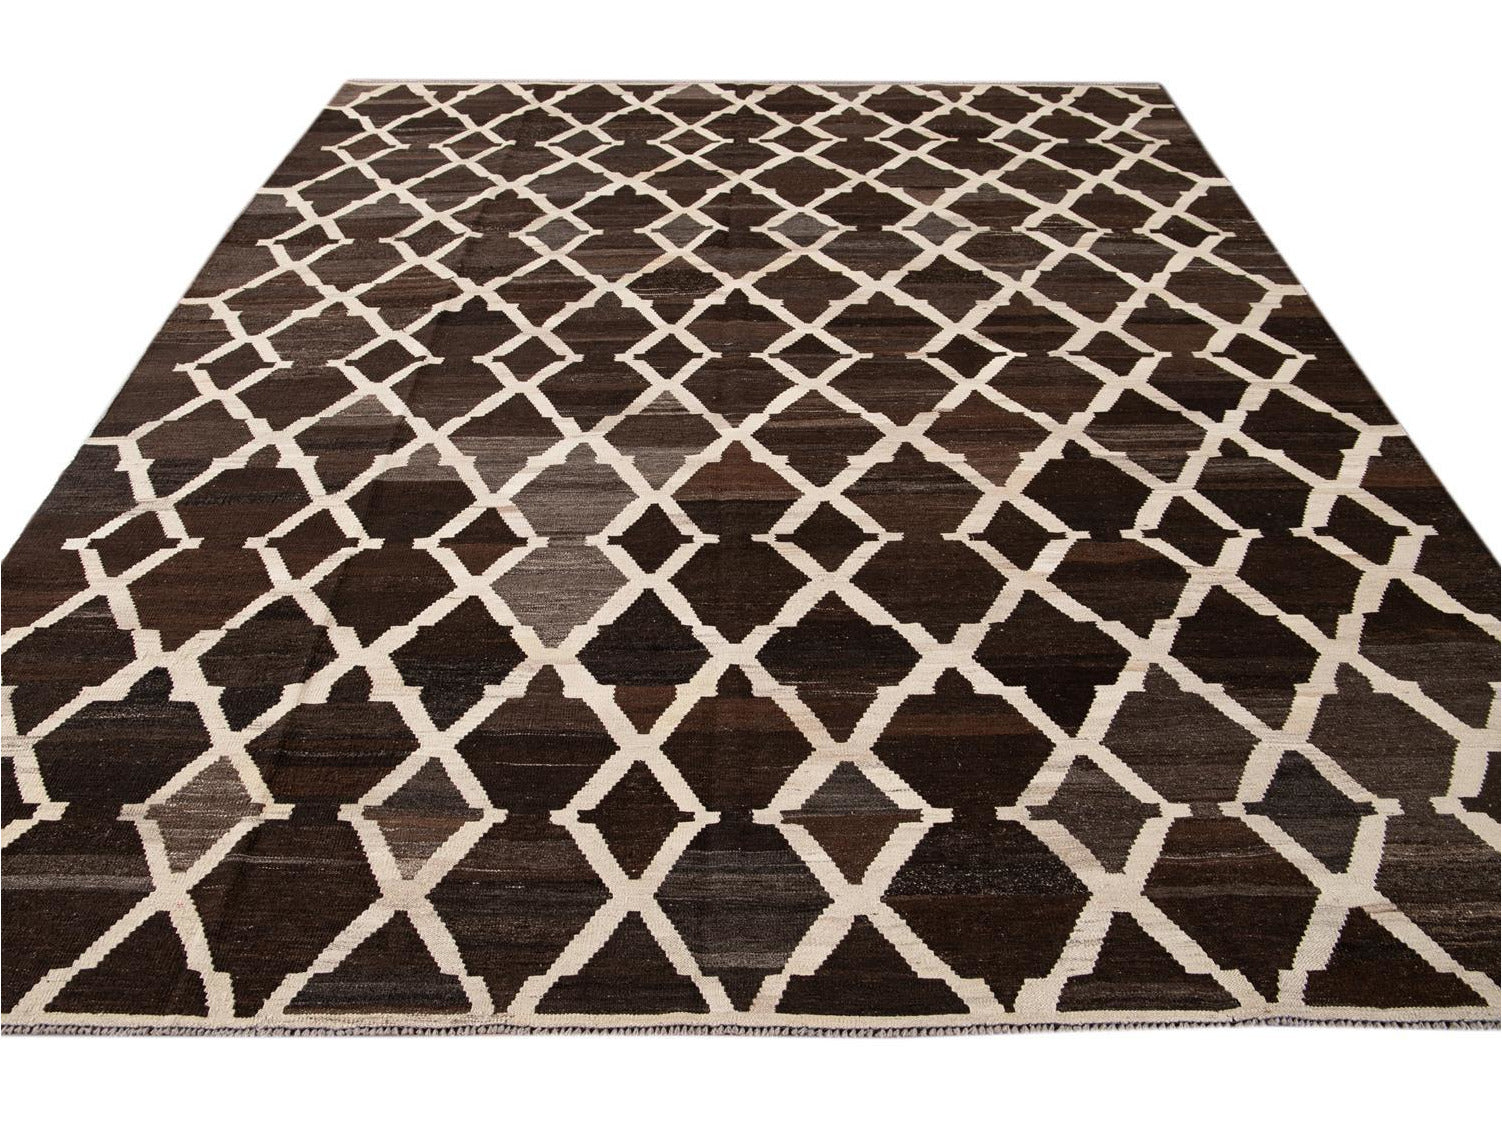 21st Century Contemporary Flatweave Kilim Wool Rug 9 X 10